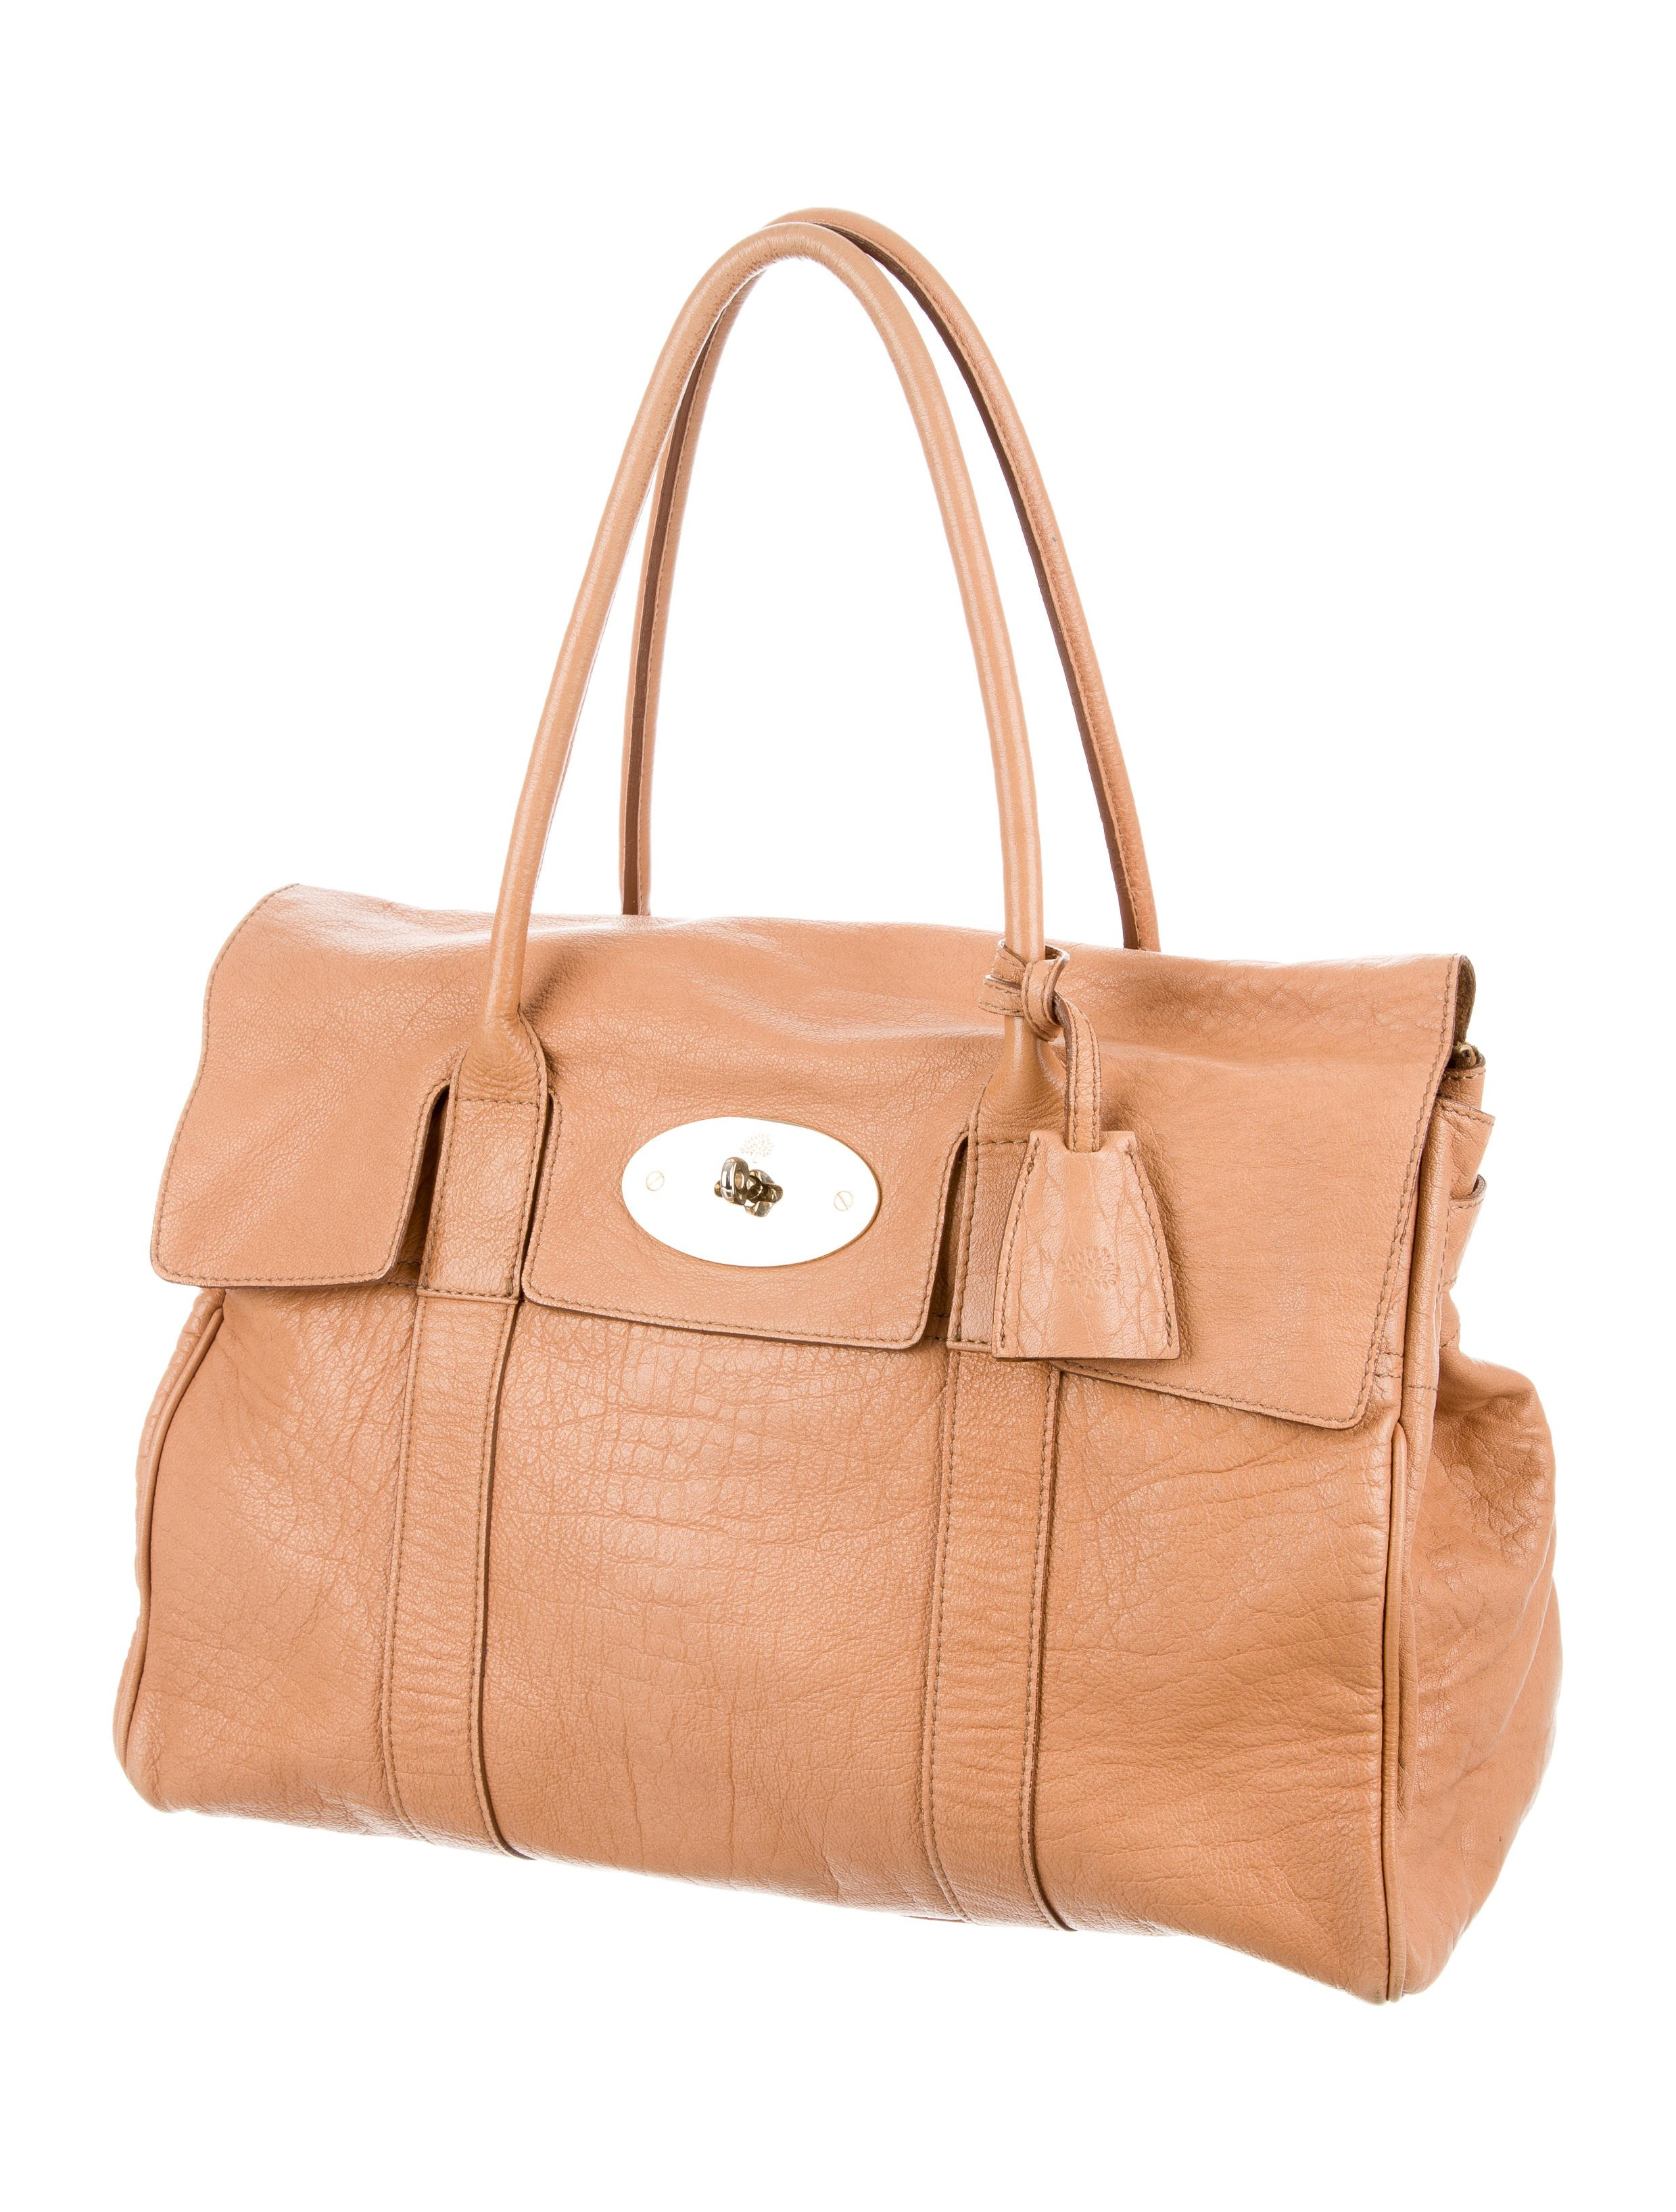 75dcdf1eeada Mulberry Leather Bayswater Bag - Handbags - MUL22741